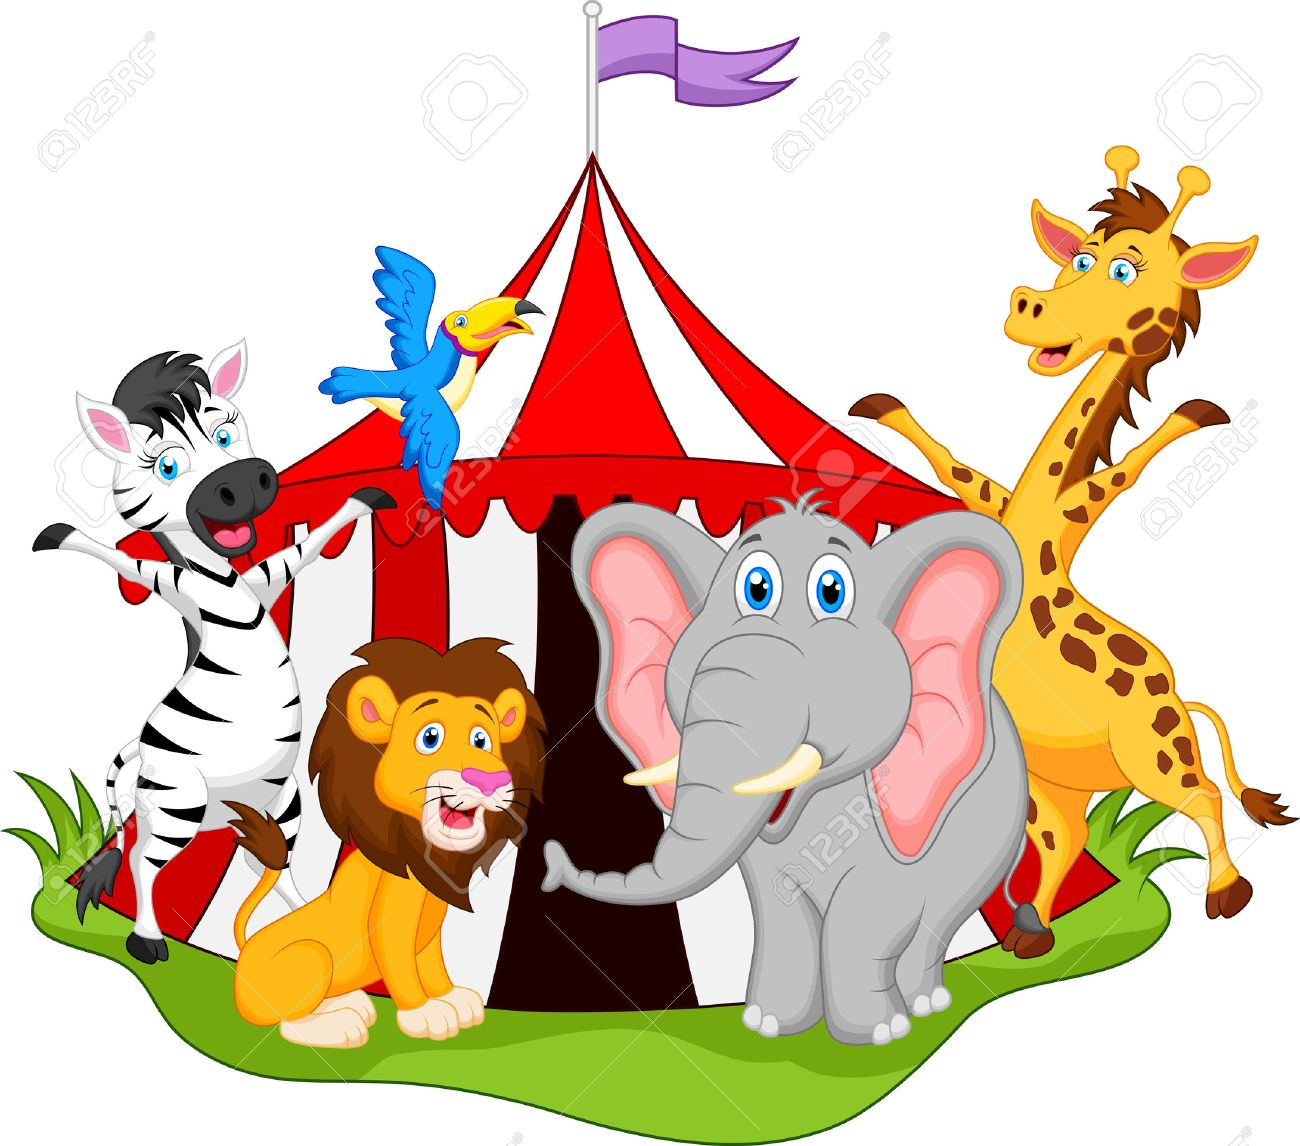 12 837 circus animals stock vector illustration and royalty free